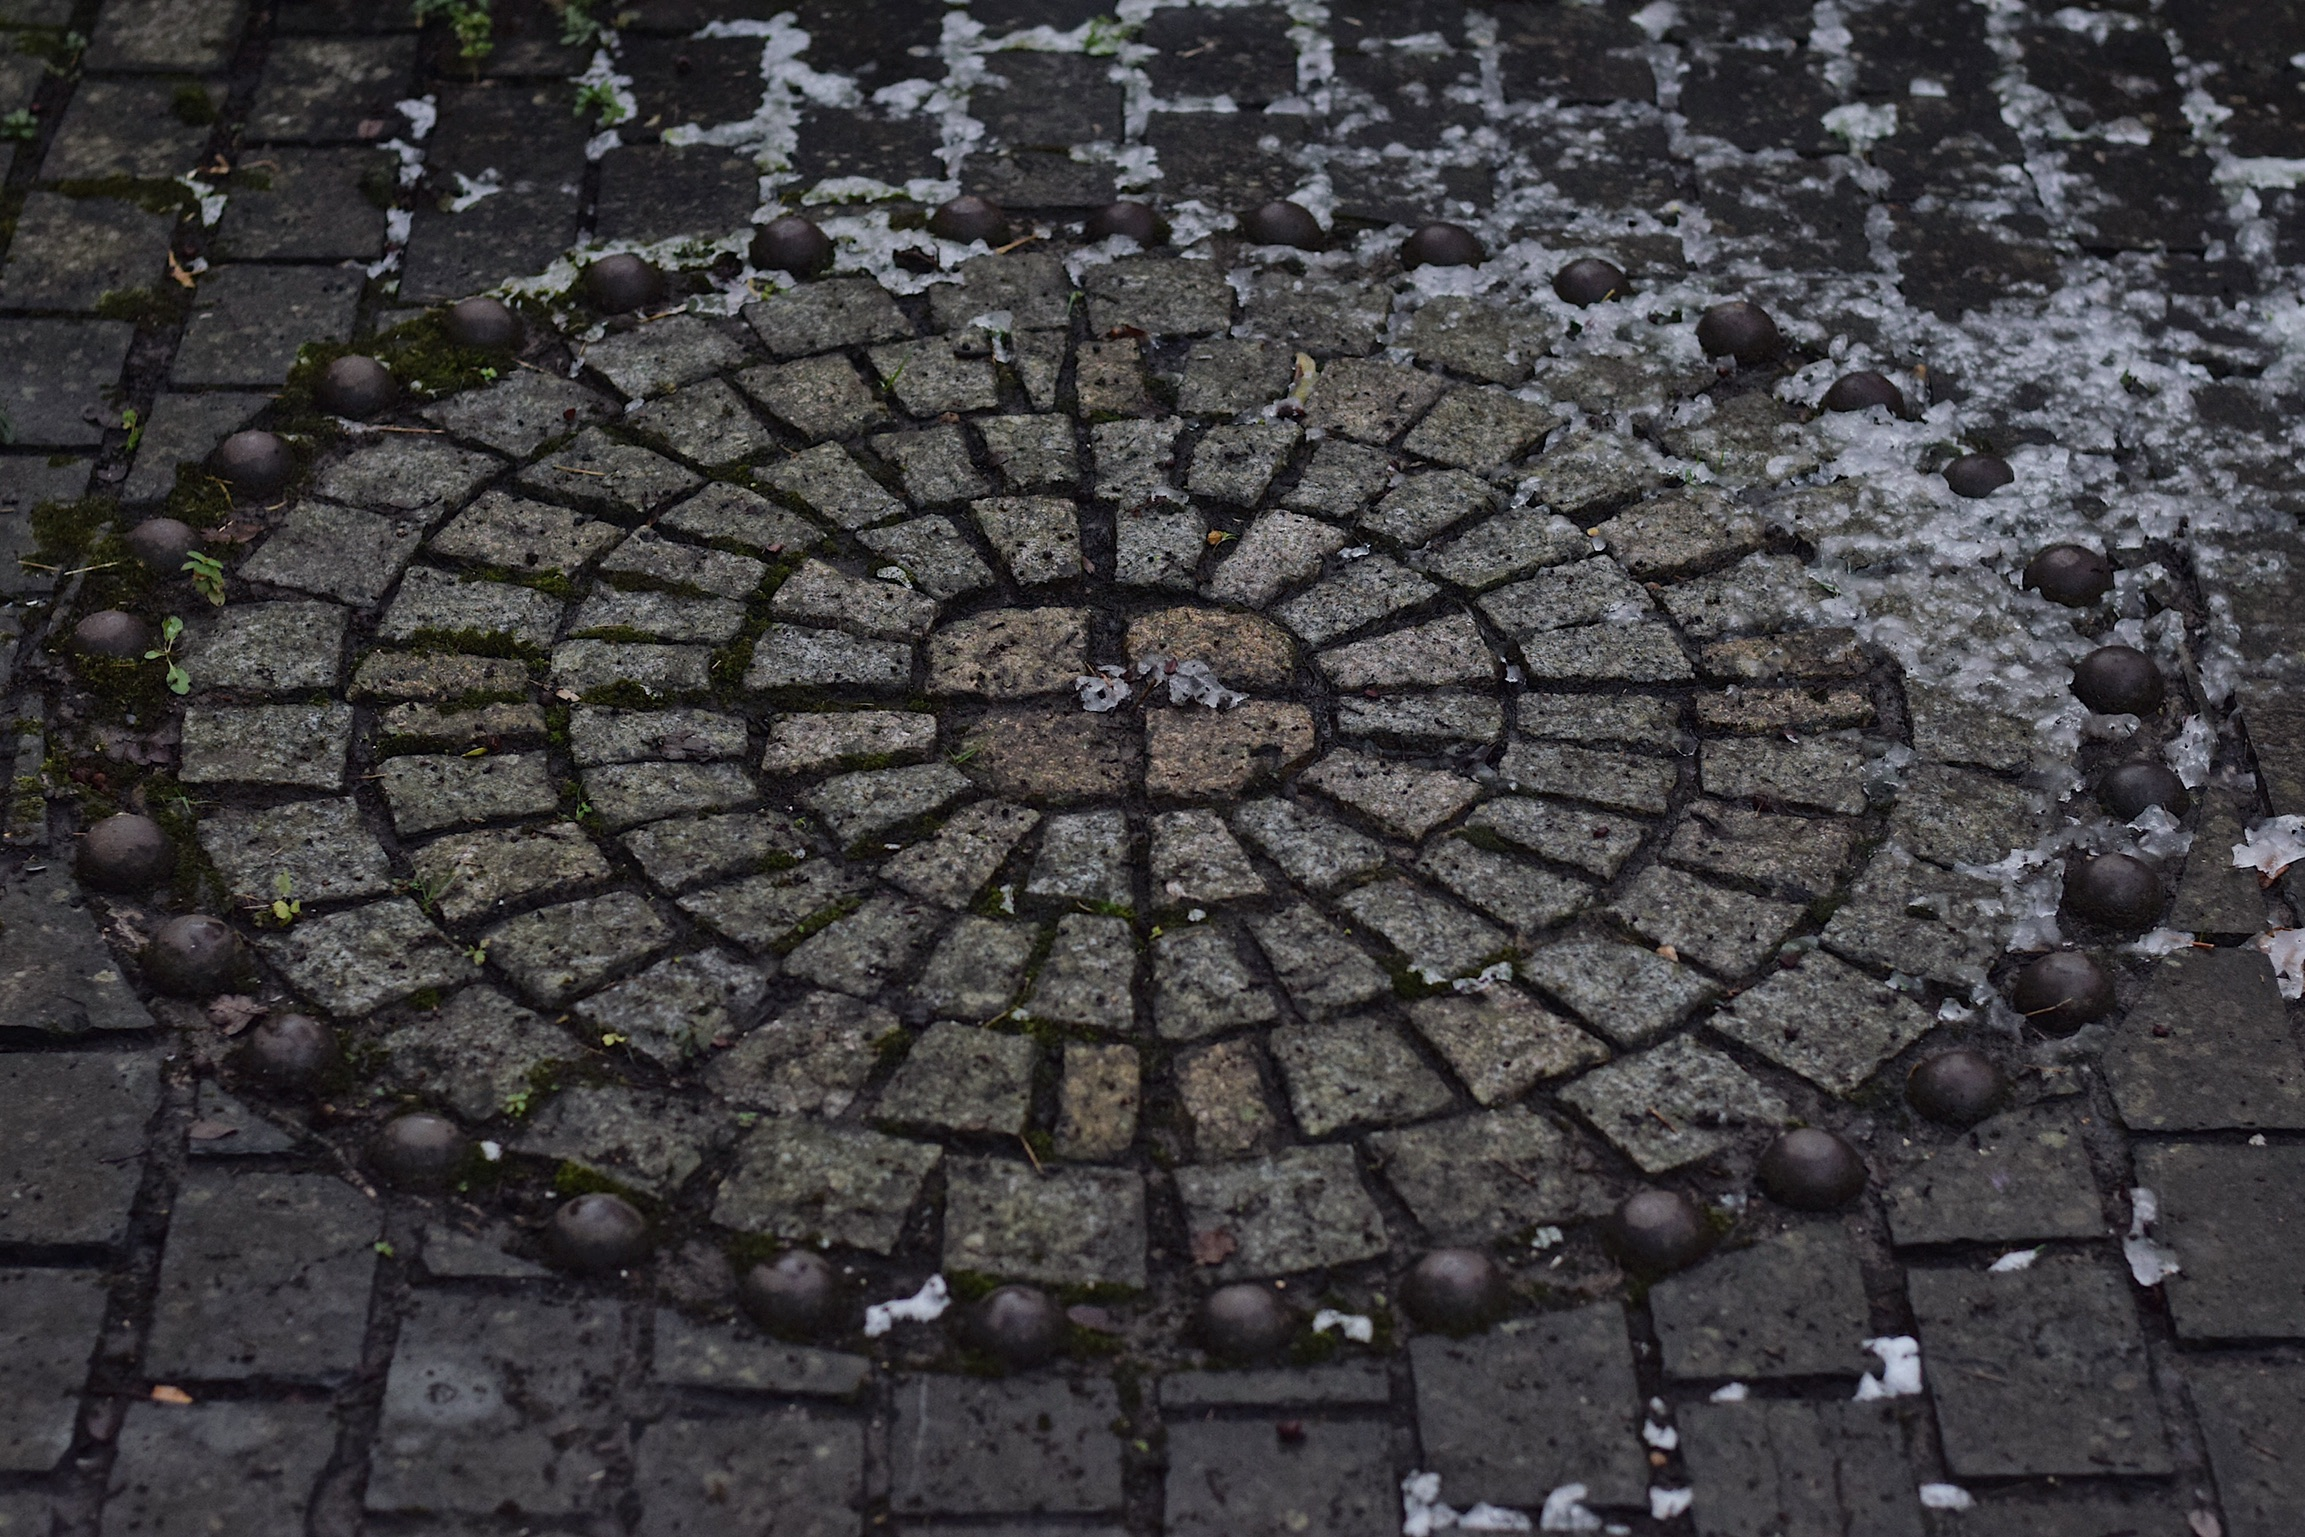 A circle with paving